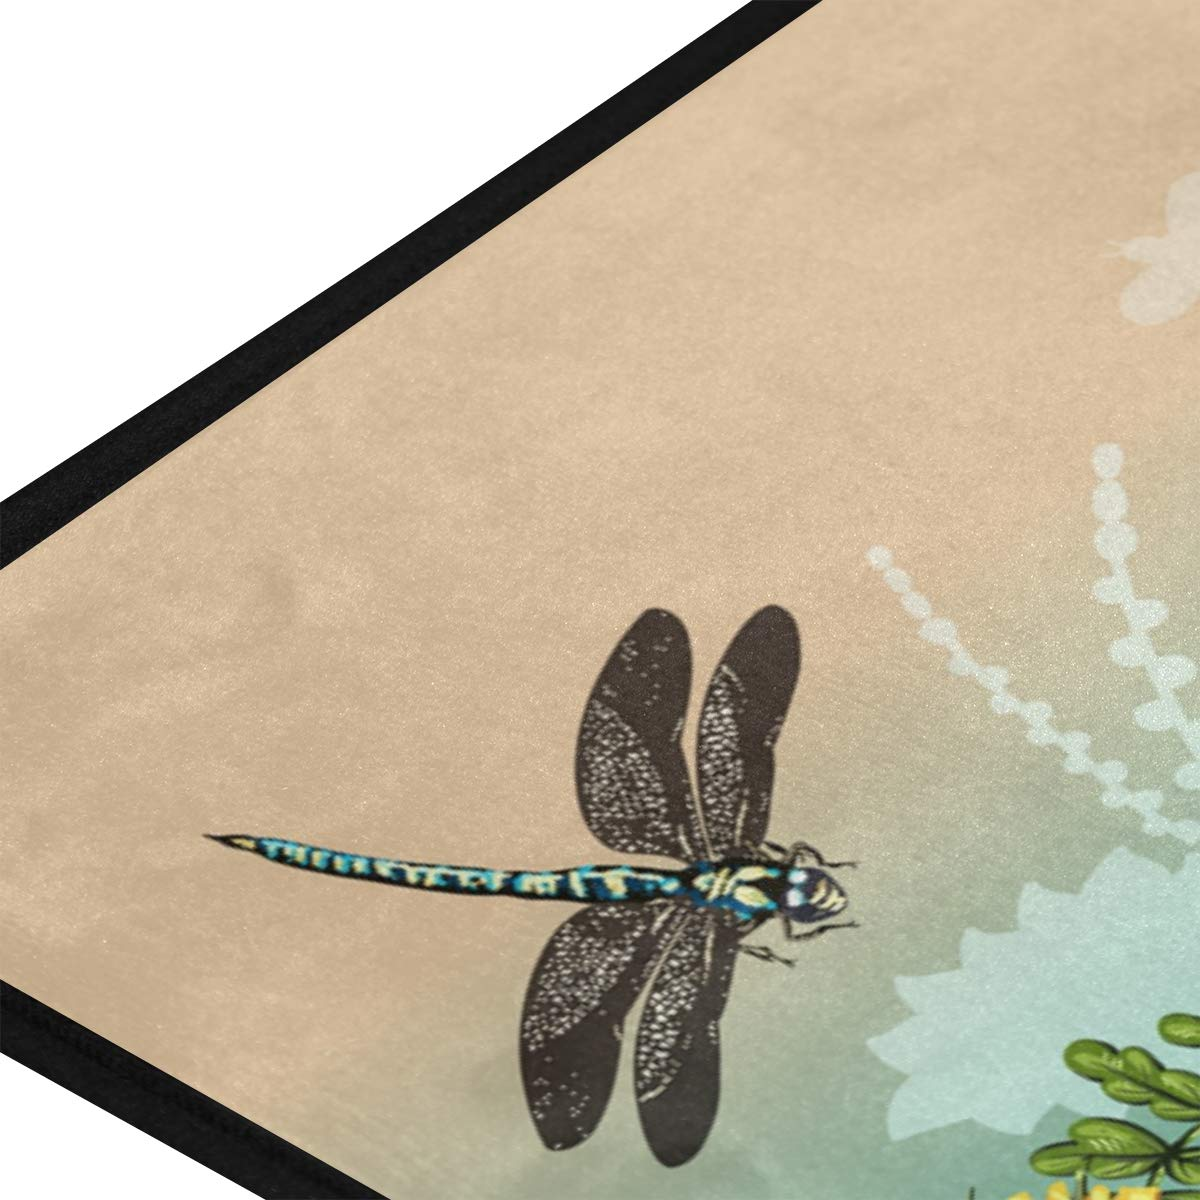 AGONA Anti Fatigue Kitchen Mat Summer Dragonflies Butterfly Colorful Floral Kitchen Rugs Non Slip Soft Standing Mats Absorbent Floor Mat Bath Rug Runner Area Rug Carpet for Home Decor Indoor Outdoor